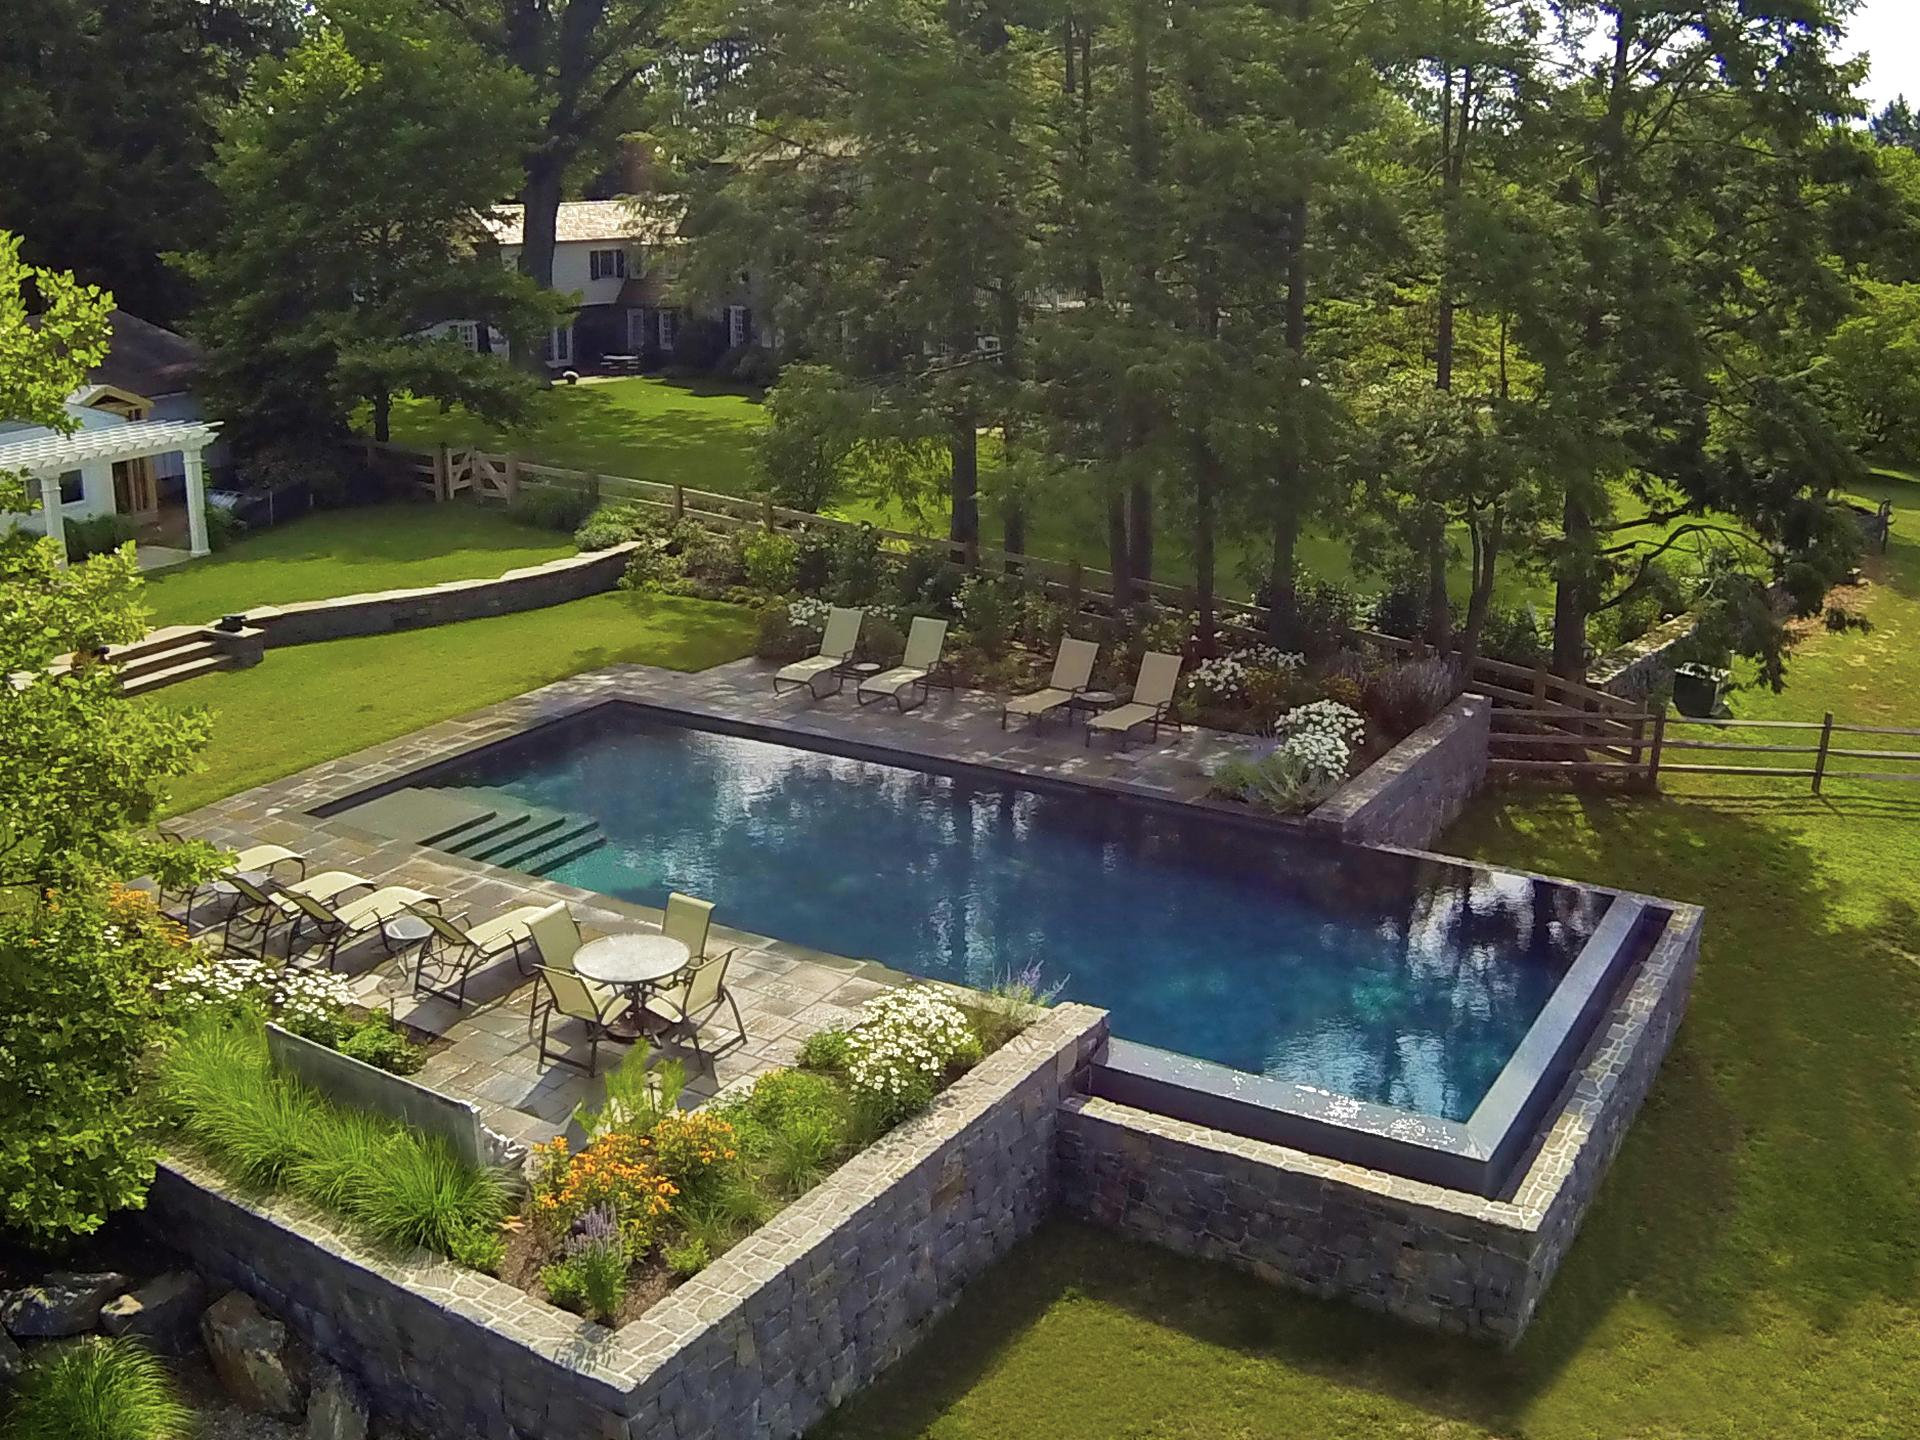 vanishing-edge-pool-custom-pool-wilmington-de-greenville-de